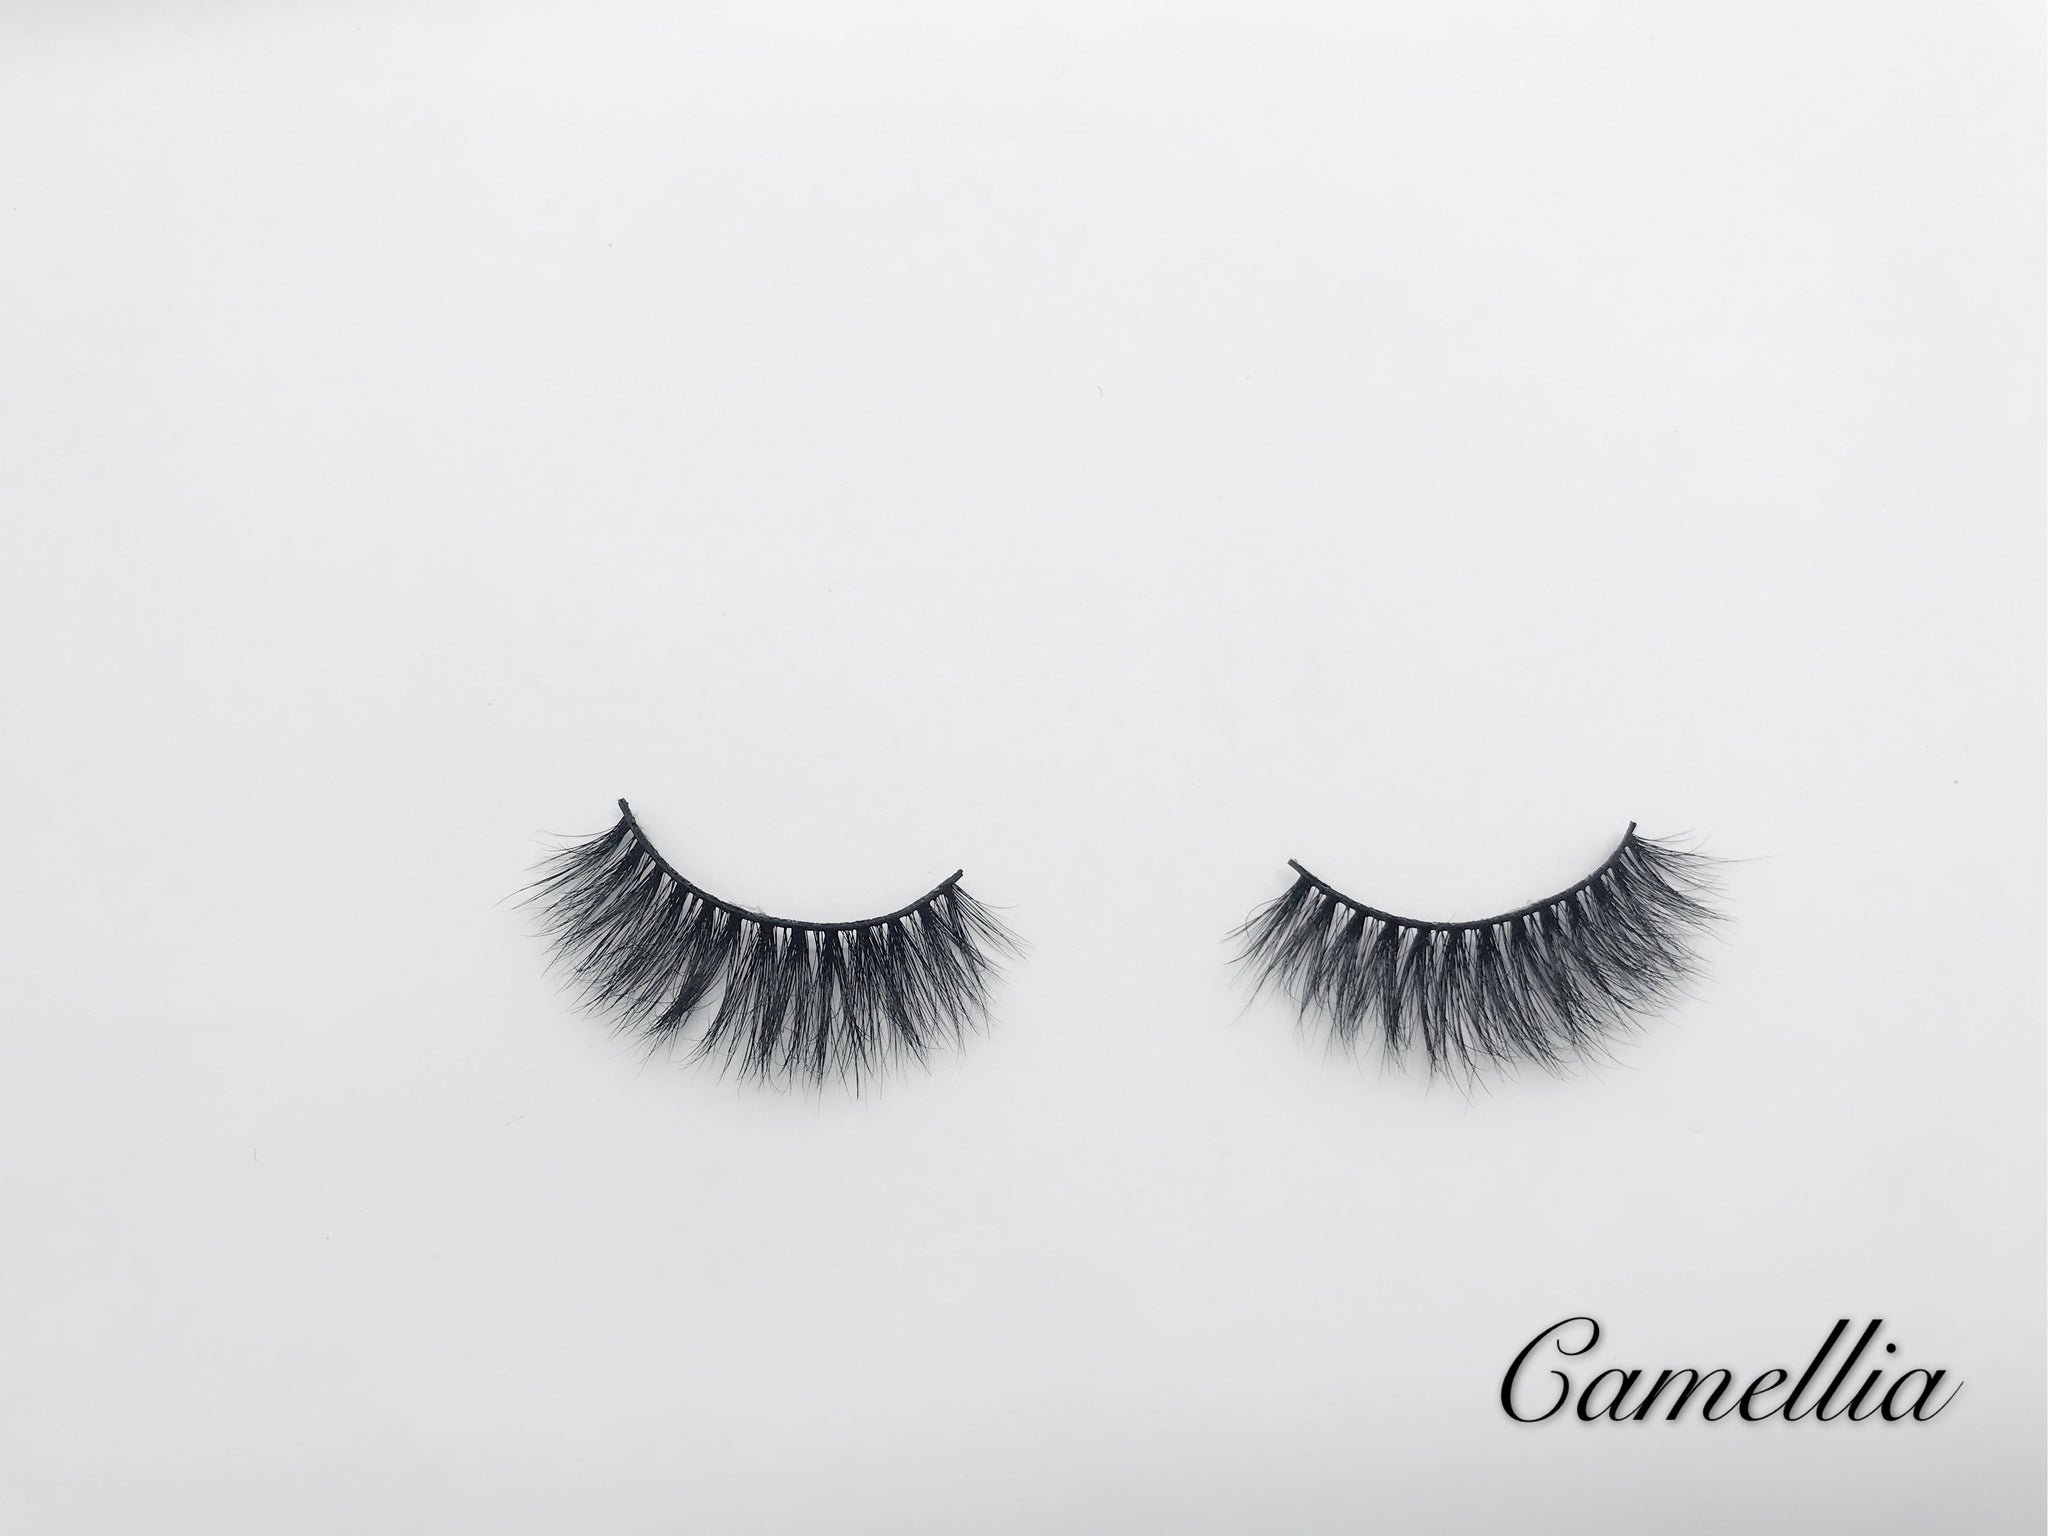 Glamour Volume Round Shape Fluffy Natural Mink Eyelashes-Camellia